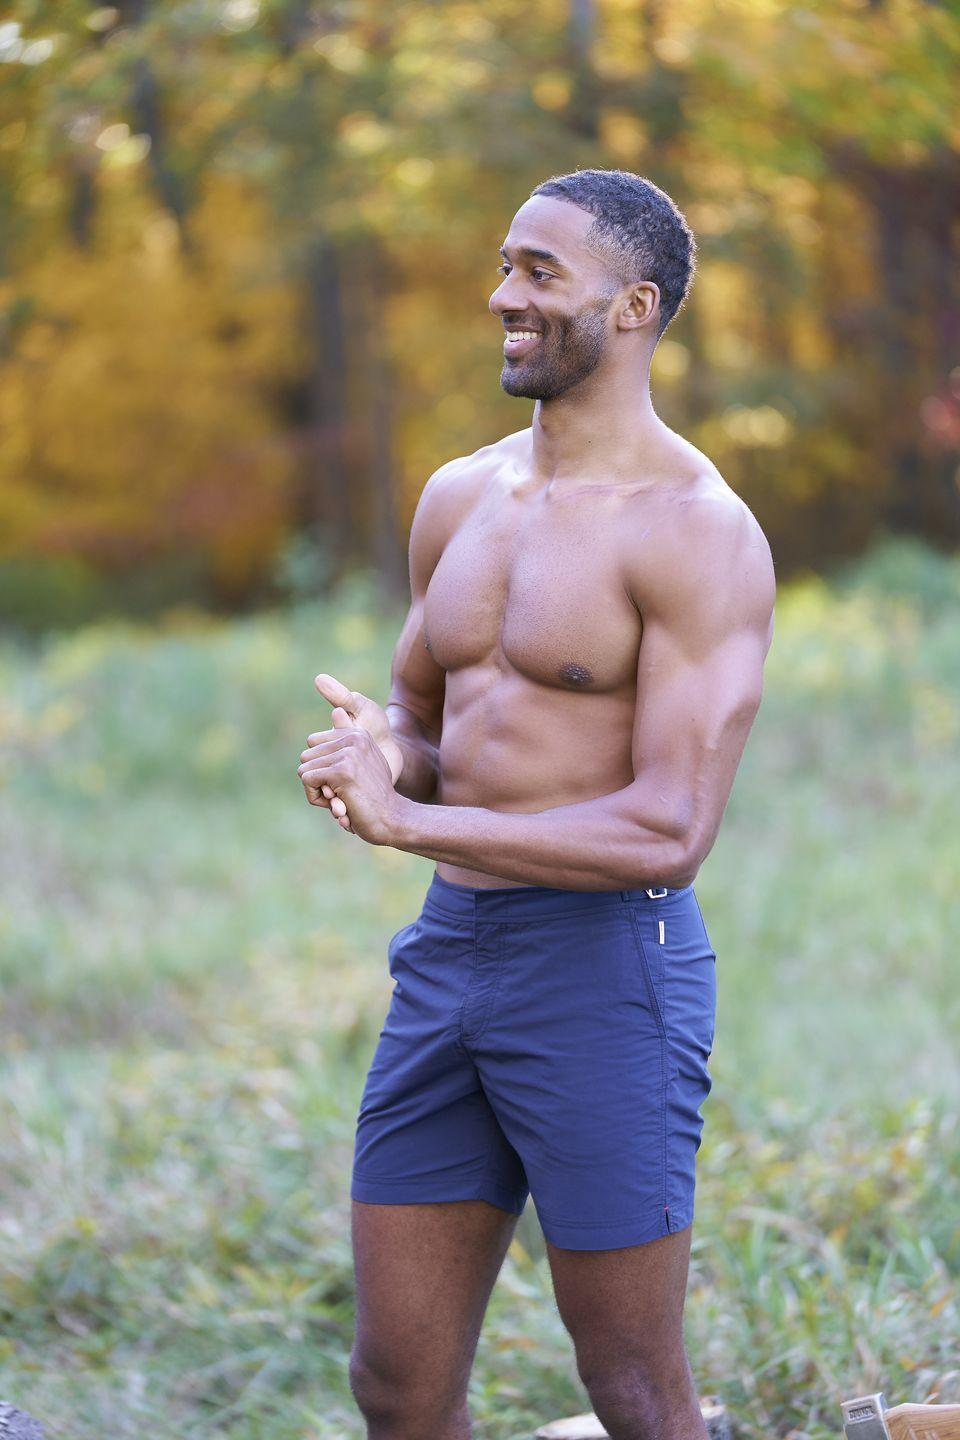 "<p>Fans often theorize that producers plant hidden mics on the show, but nope: contestants know exactly when they're being filmed.</p><p>""There's no hidden mics anywhere,"" Chris confirmed to <em><a href=""https://www.etonline.com/chris-harrison-spills-bts-bachelor-secrets-hidden-cameras-limo-exits-and-fantasy-suites-exclusive"" rel=""nofollow noopener"" target=""_blank"" data-ylk=""slk:ET"" class=""link rapid-noclick-resp"">ET</a></em>. ""It's not a gotcha show. It's not a hidden camera show. We've had 'scandals' in the past when people say, 'You guys are filming 24/7! How do you not have that on TV?' We don't.""</p>"